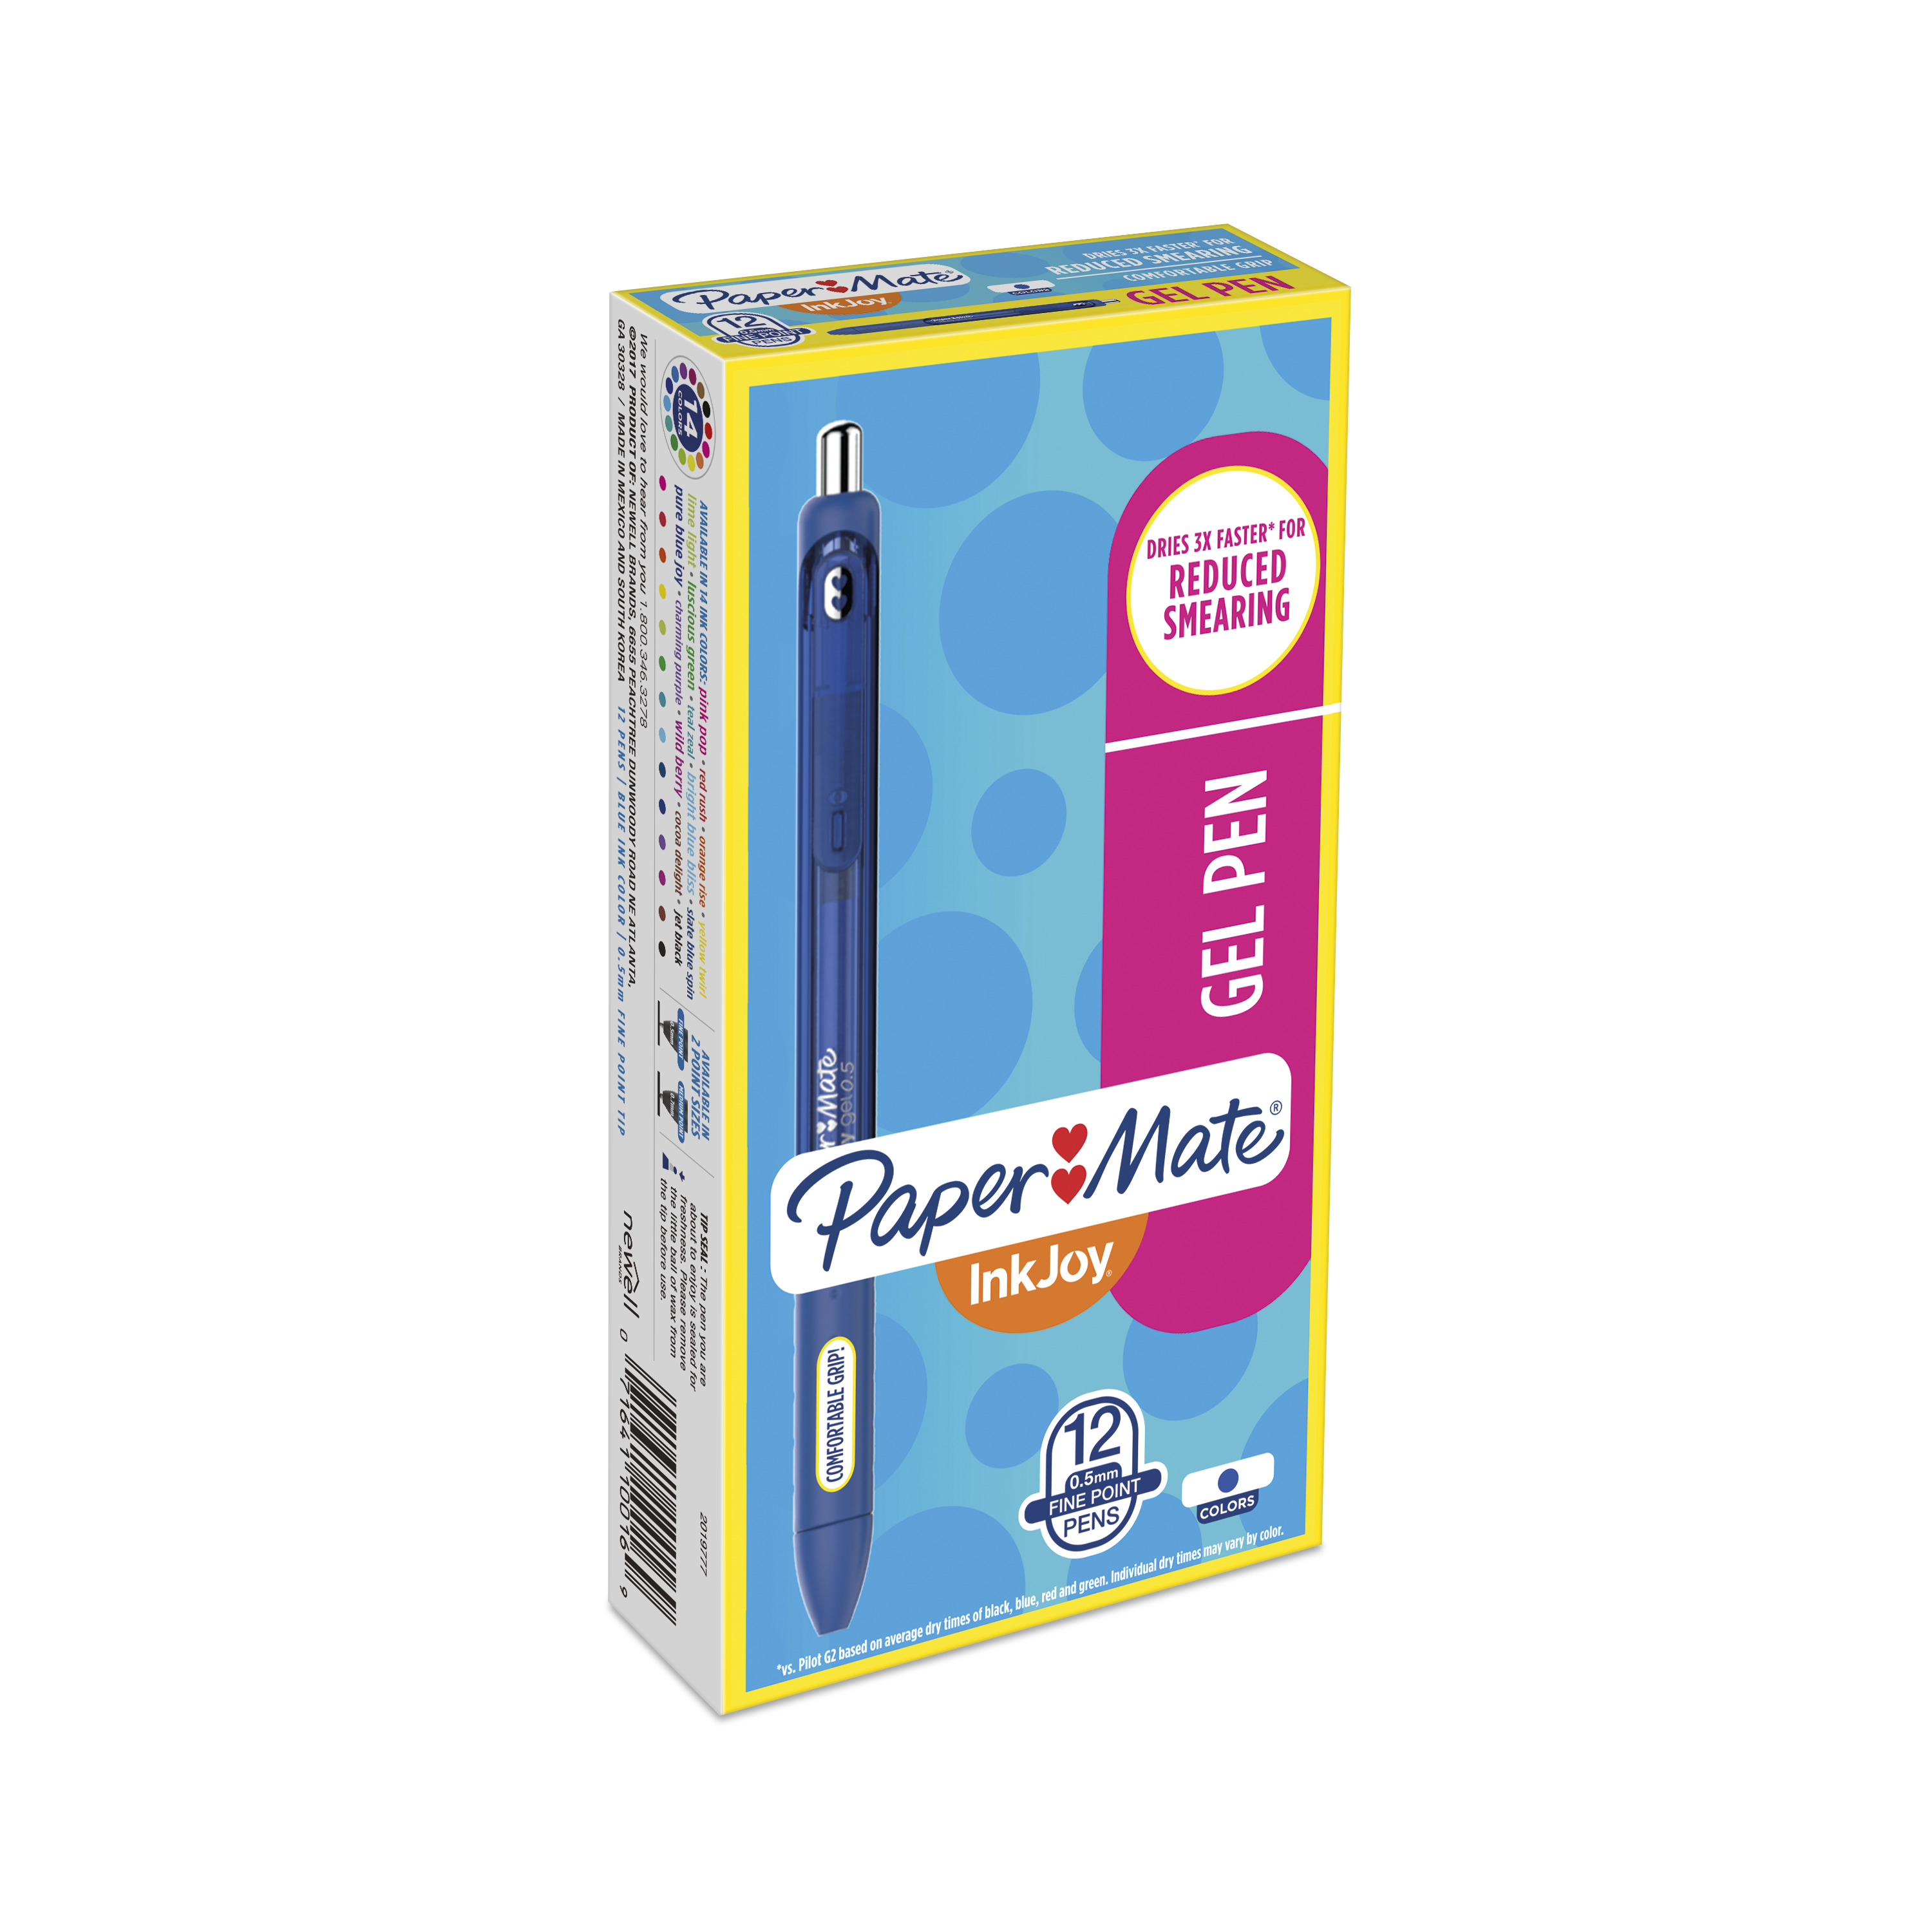 Paper Mate InkJoy Gel Retractable Pen, 0.5mm, Blue Ink, Dozen